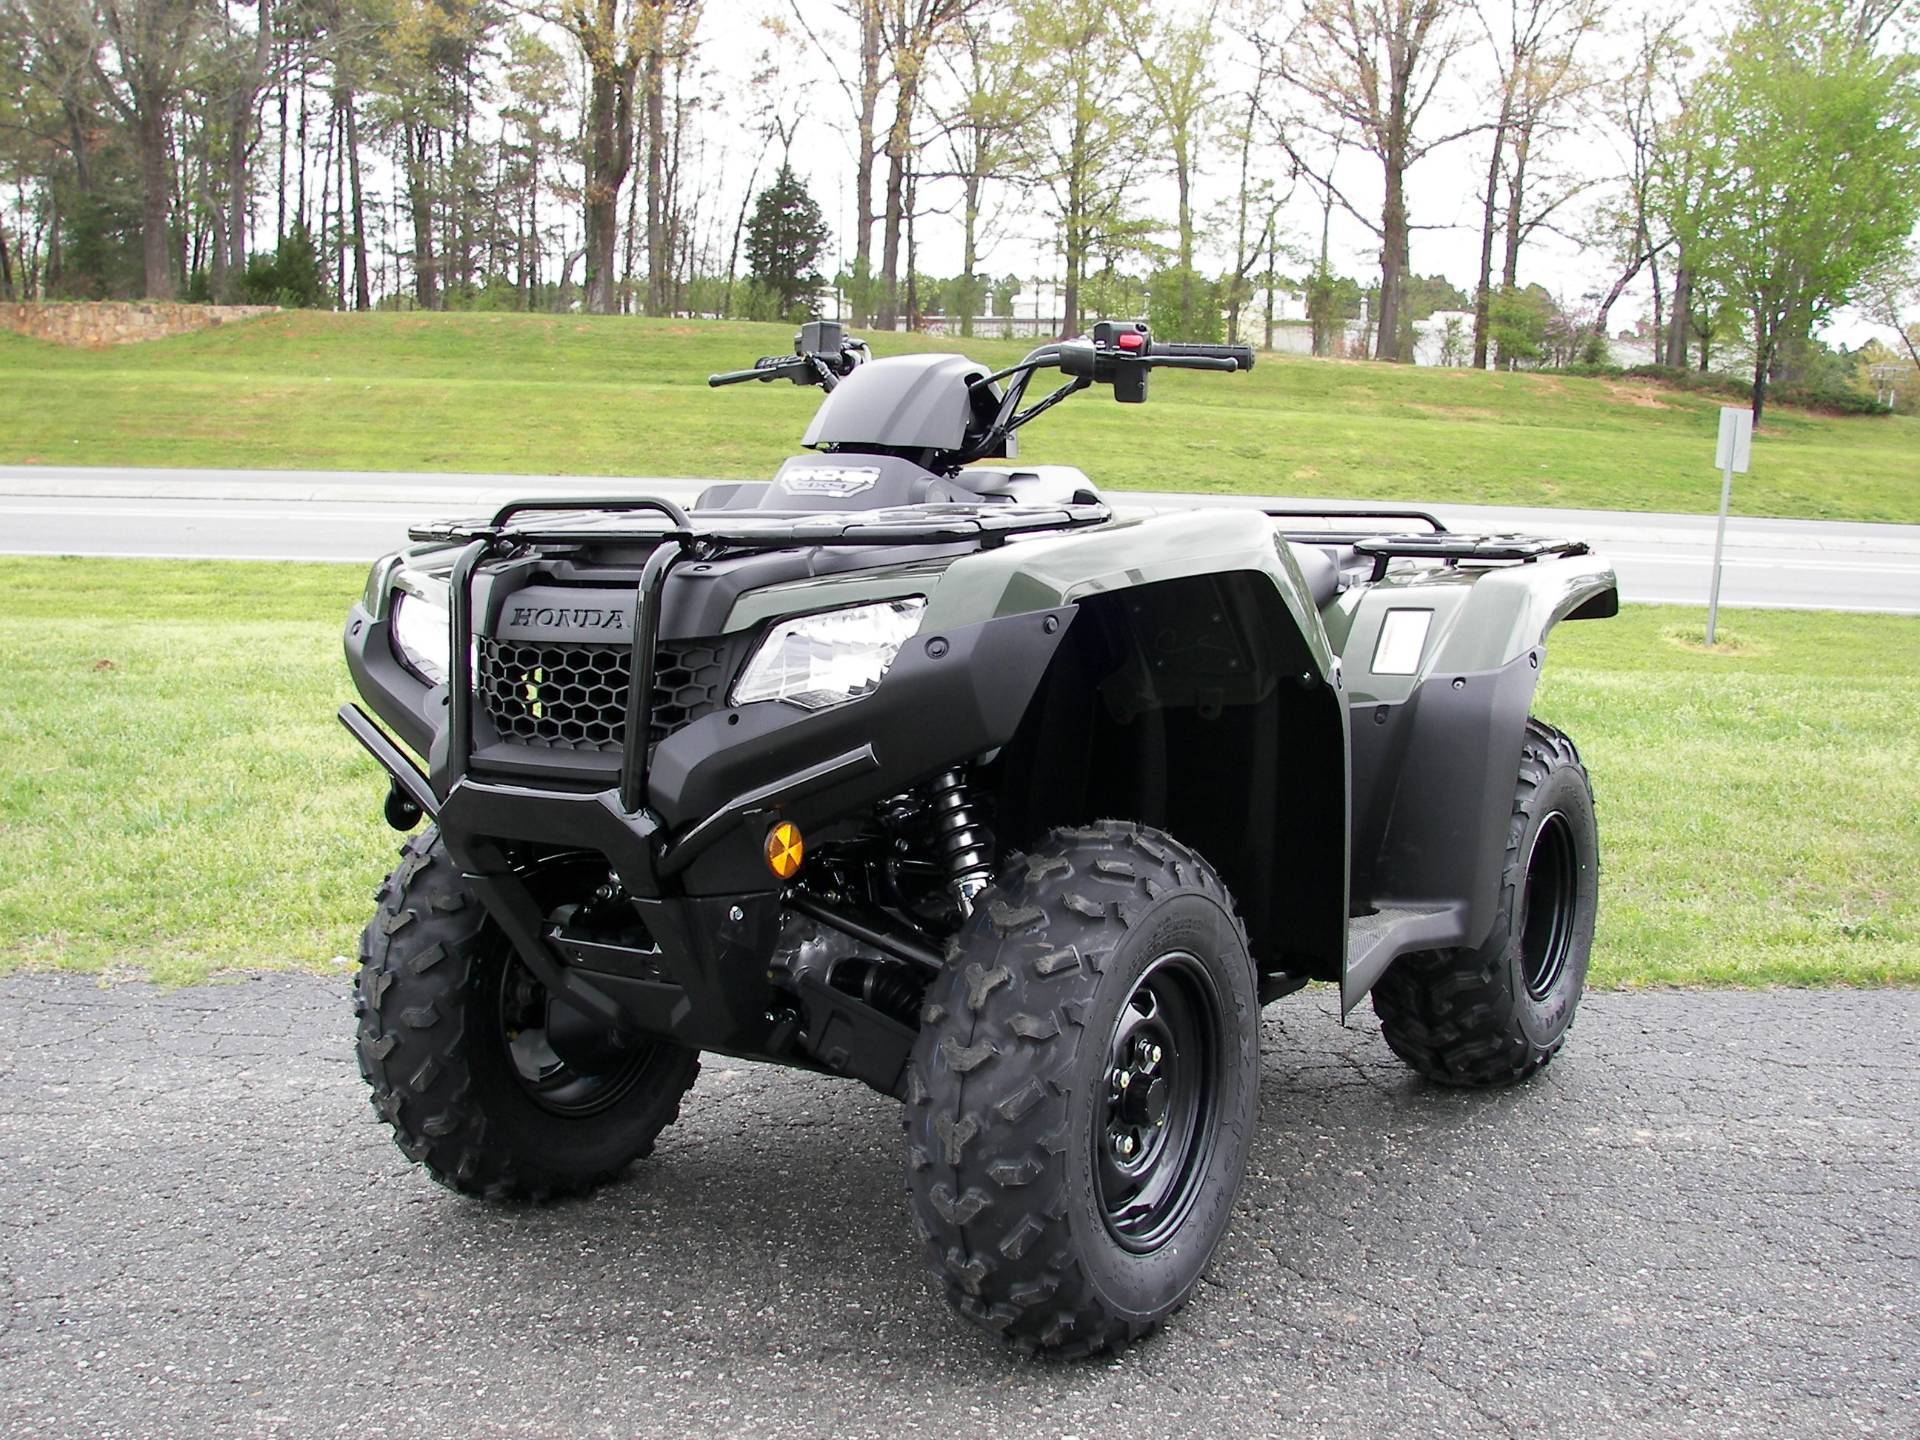 2021 Honda FourTrax Rancher 4x4 ES in Shelby, North Carolina - Photo 3